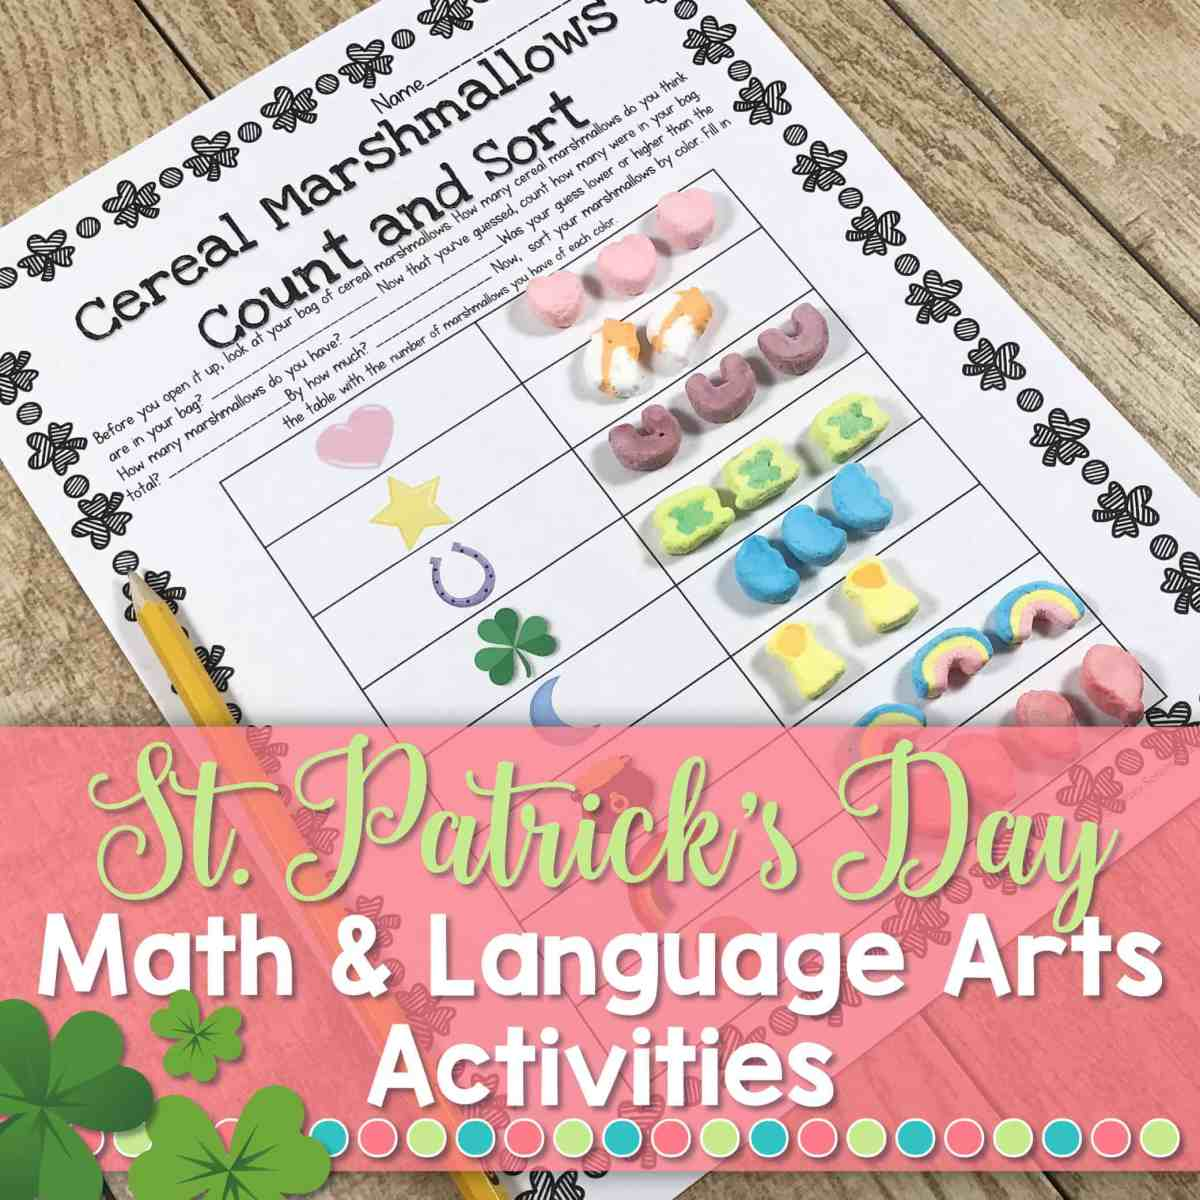 Math & Language Arts with Lucky Charms is perfect for St. Patrick's Day in the classroom!